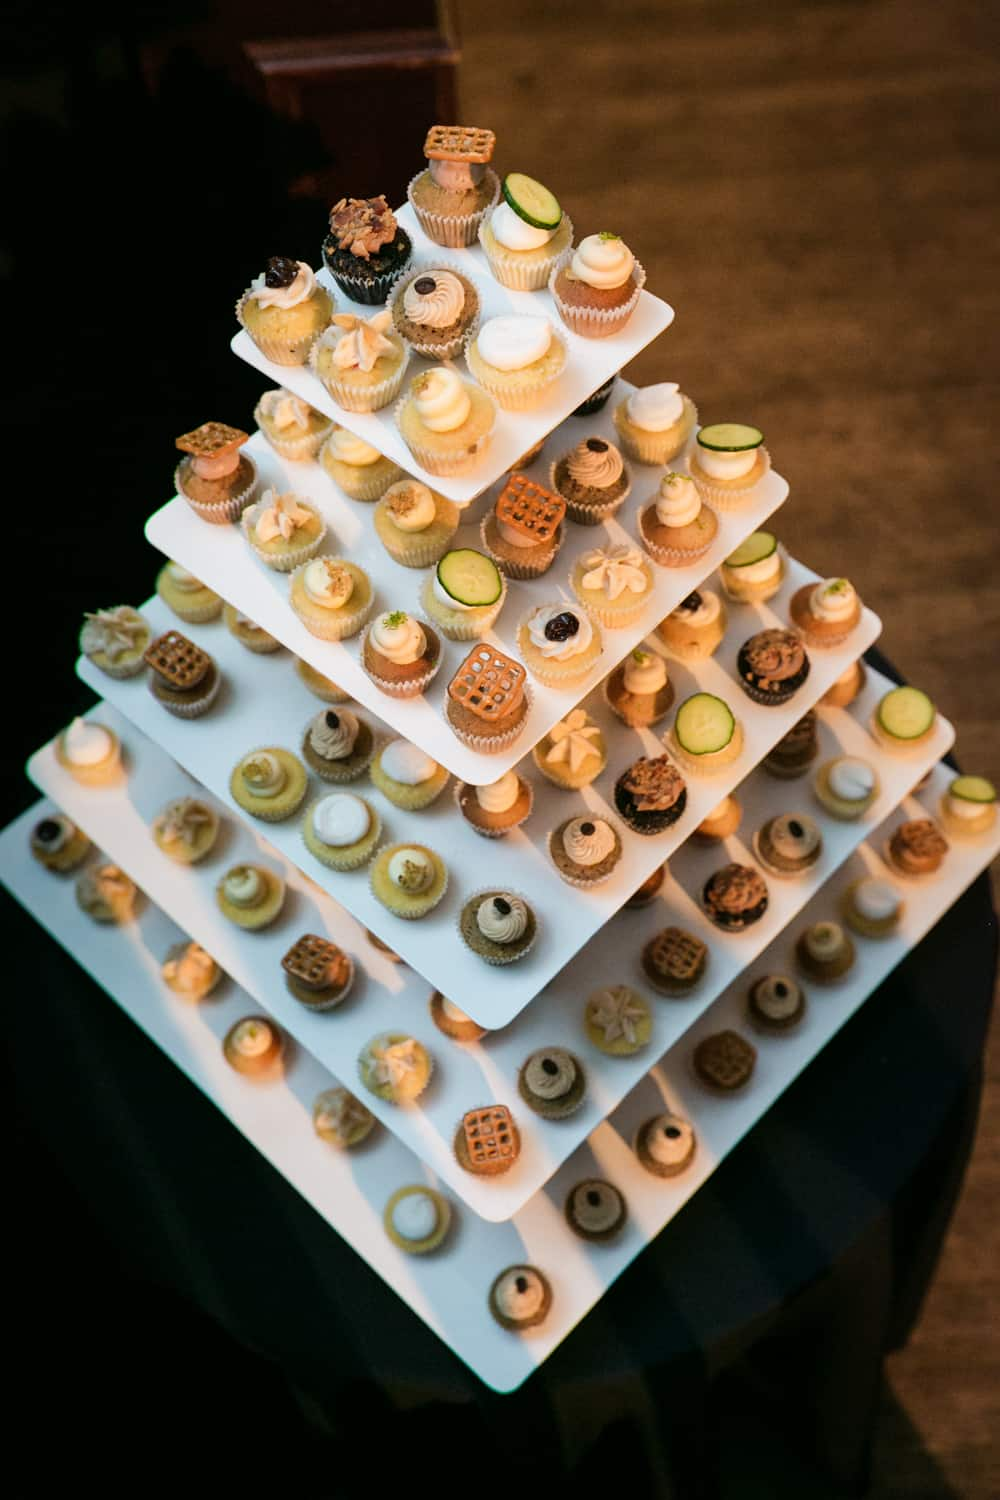 Tower of cupcakes from Prohibition Bakery